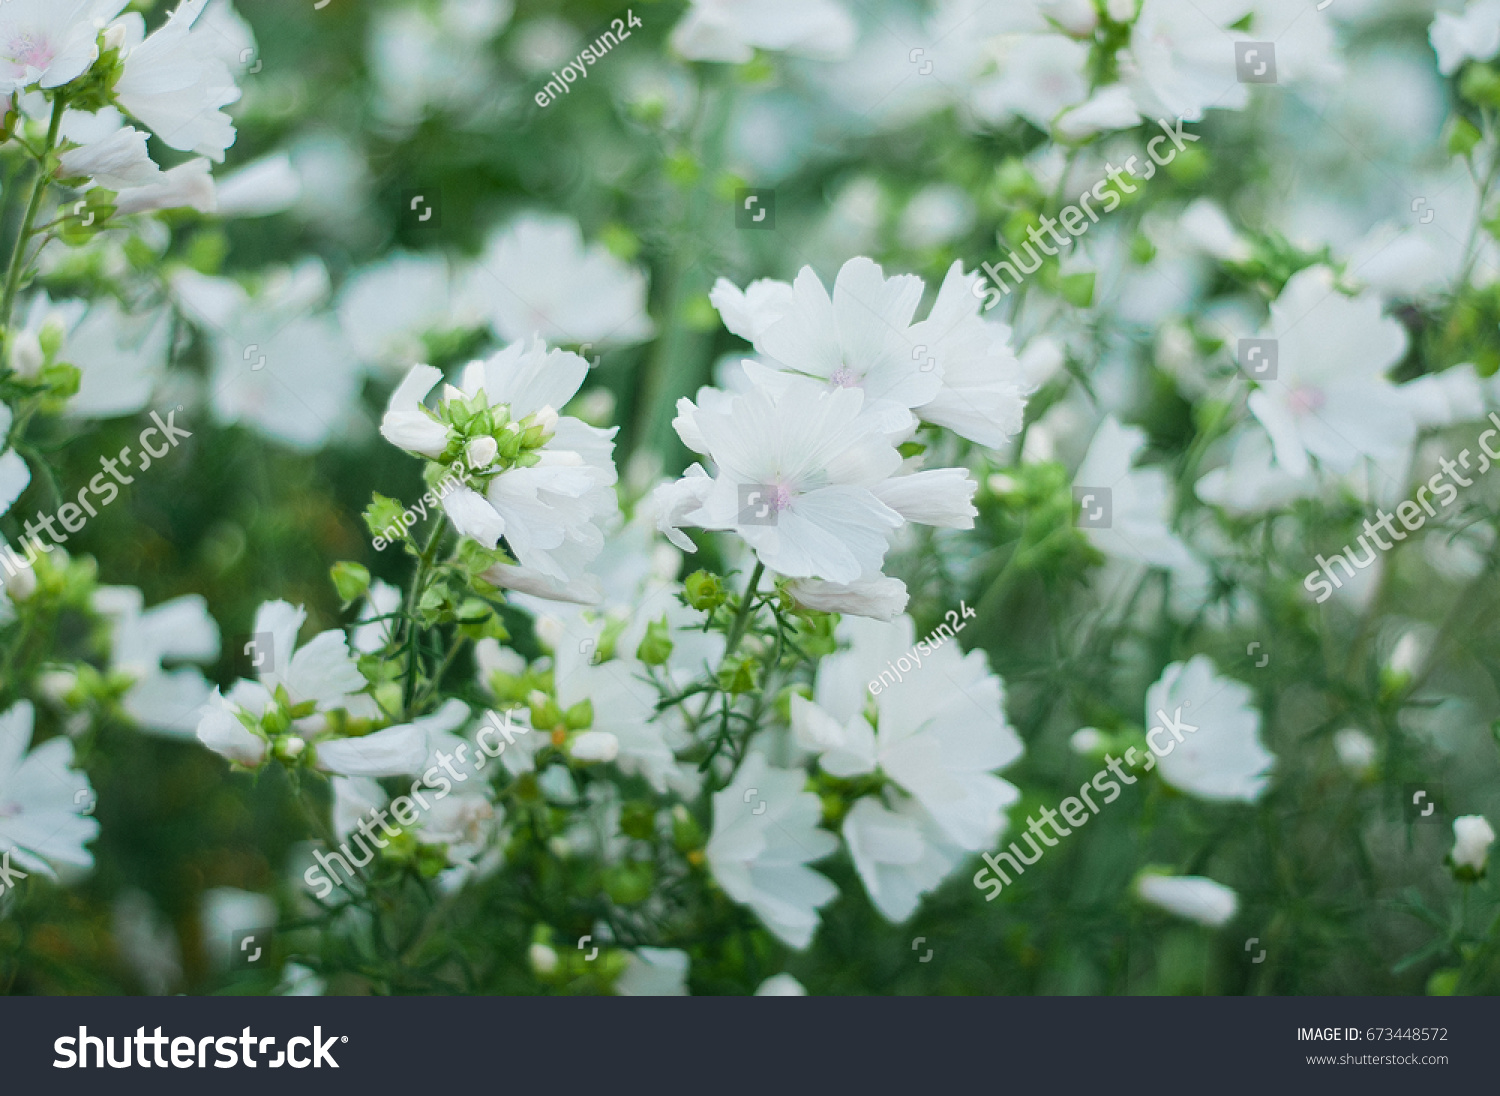 Snowinsummer Plants Have Small White Flowers Stock Photo Edit Now